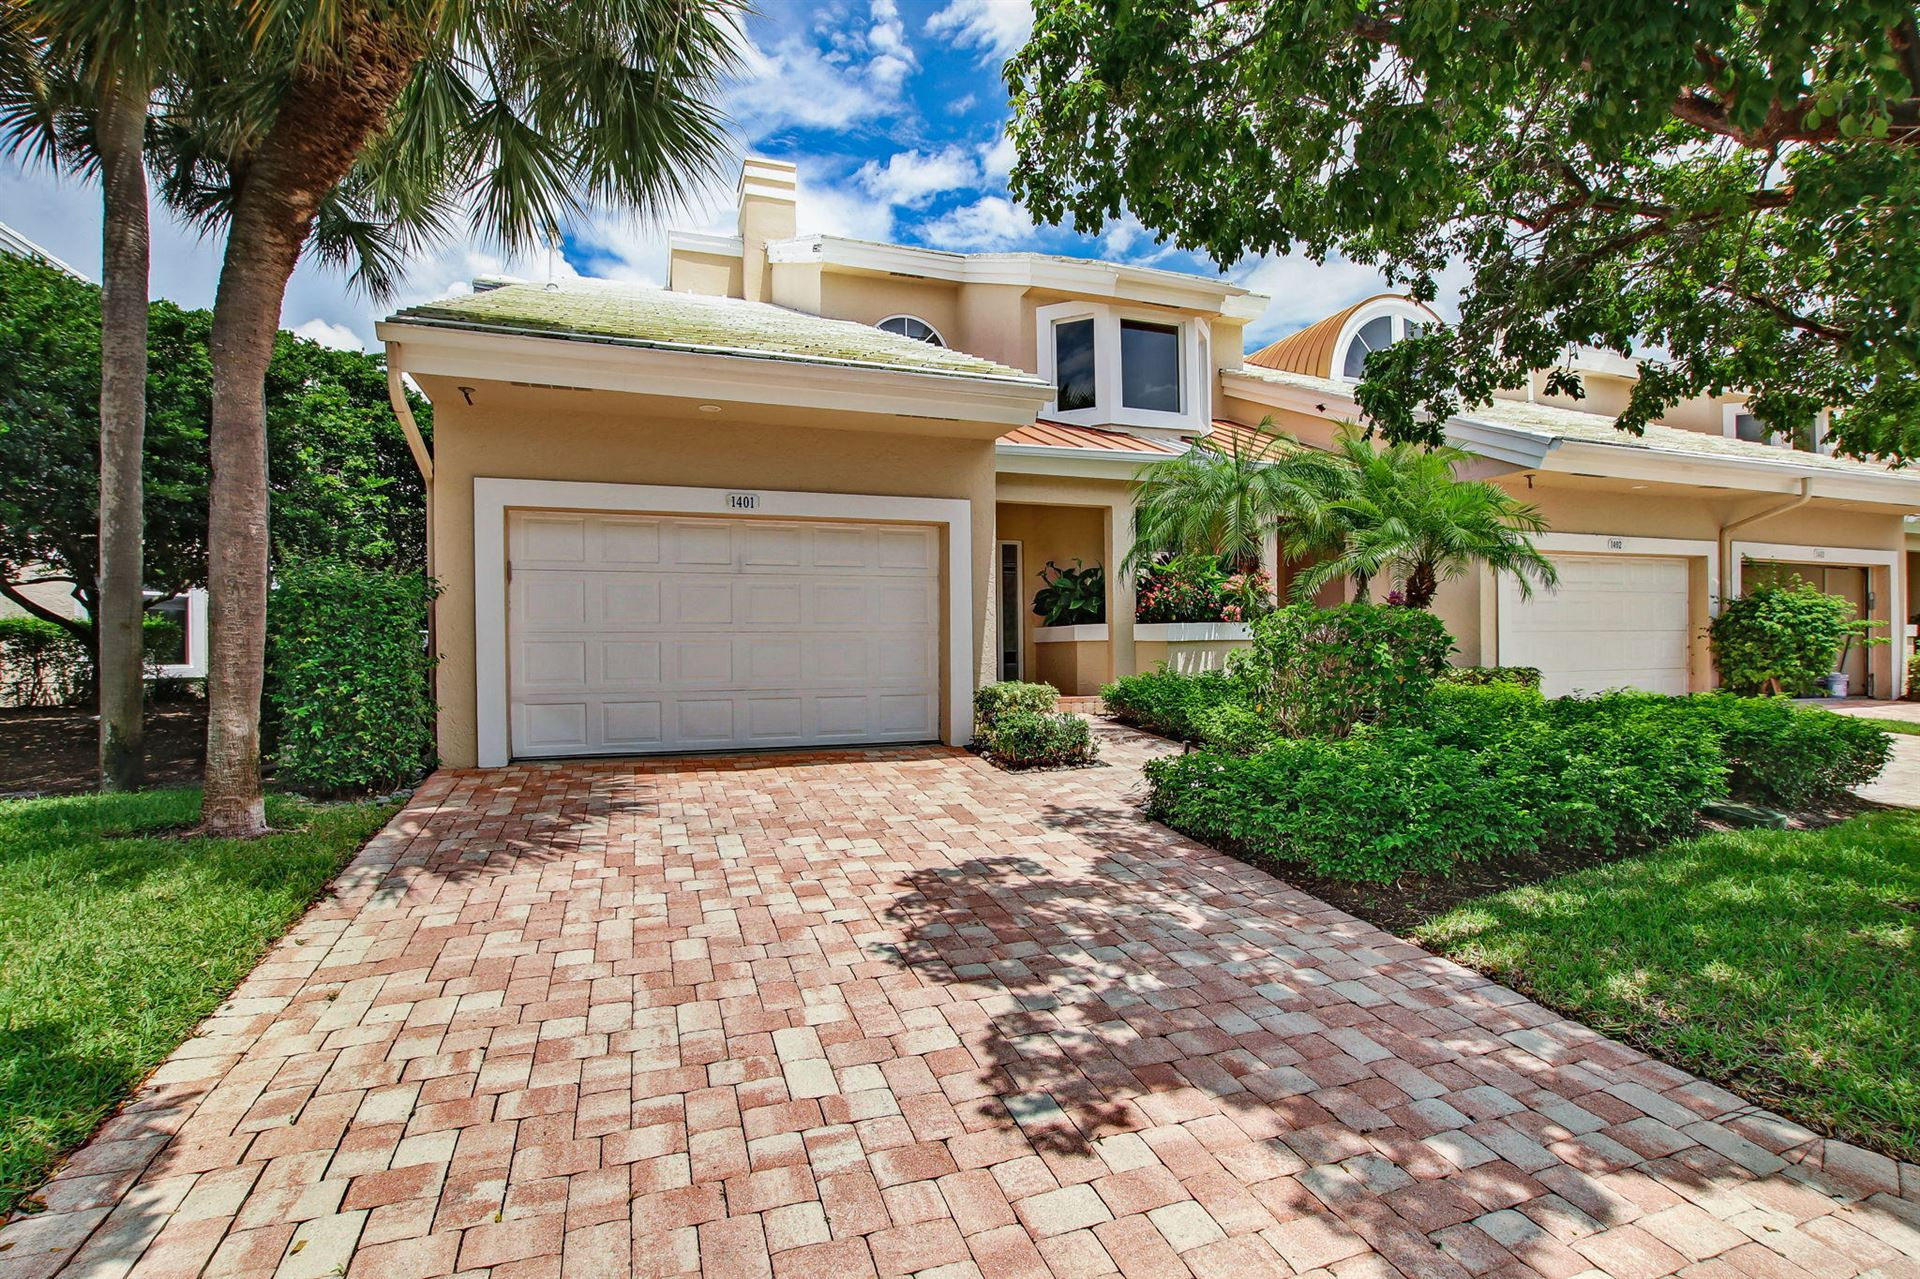 Photo of 1401 Captains Way, Jupiter, FL 33477 (MLS # RX-10645941)